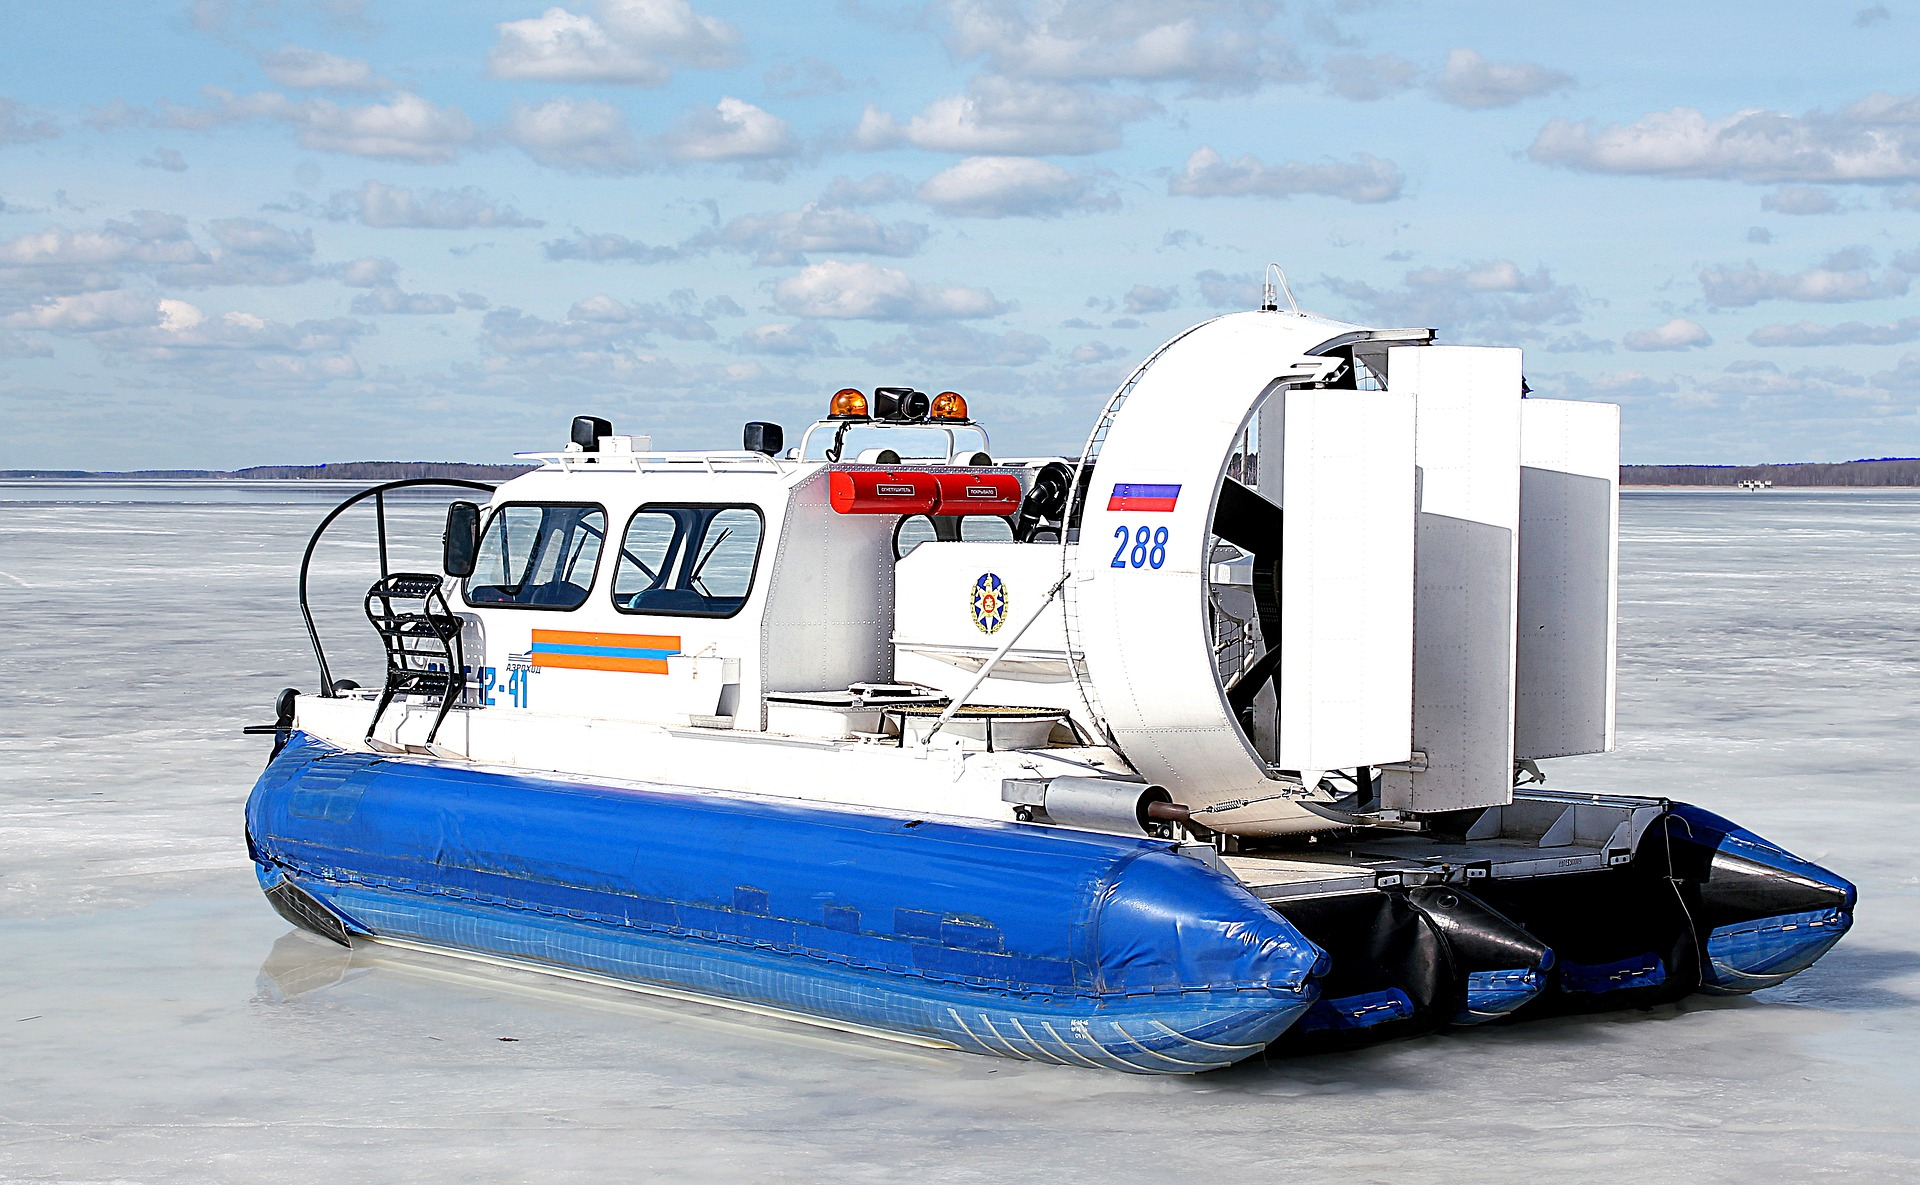 Hovercraft Insurance Commercial & Business use call 0333 3207 787